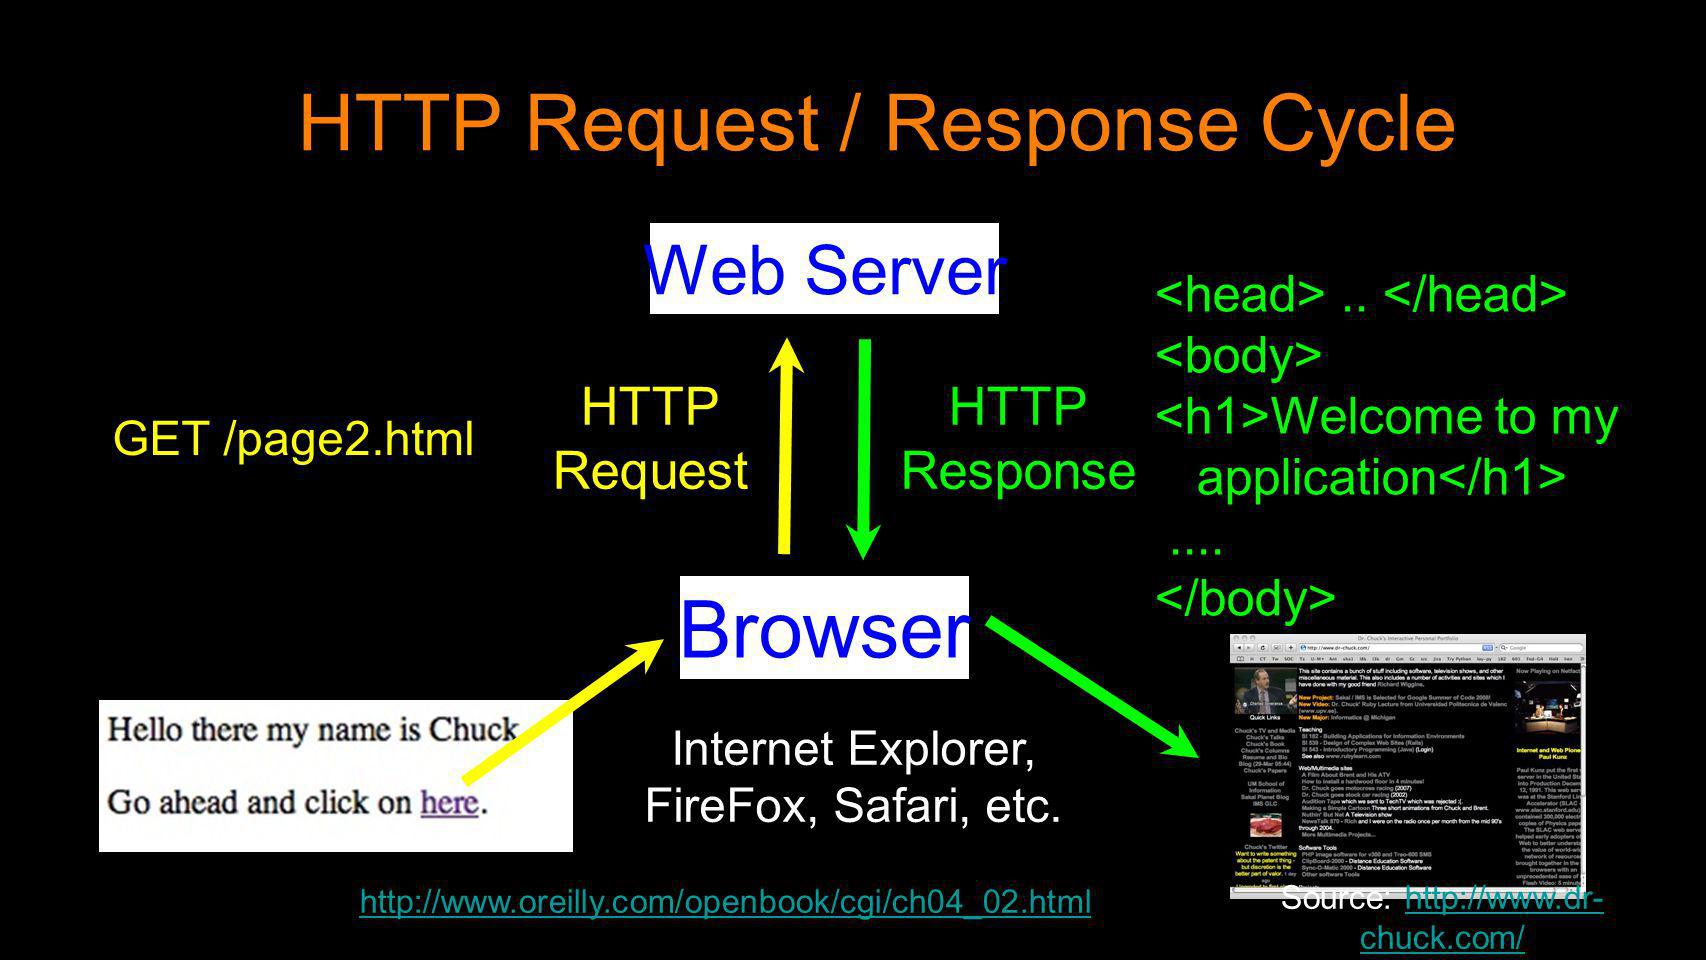 HTTP Request / Response Cycle Browser Web Server HTTP Request HTTP Response Internet Explorer, FireFox, Safari, etc. GET /page2.html.. Welcome to my a